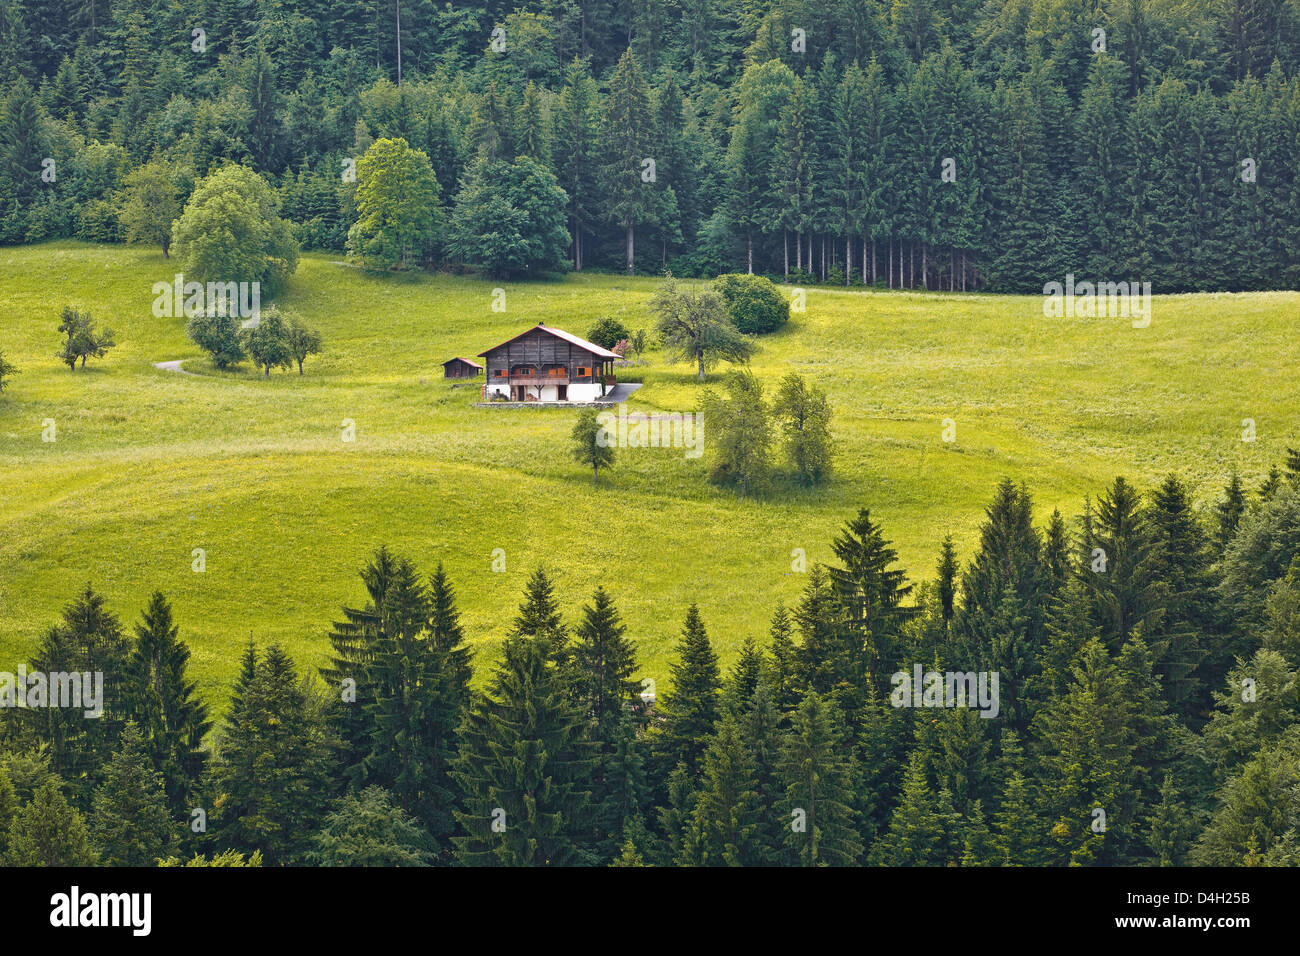 A typical house in the Haute-Savoie, France - Stock Image